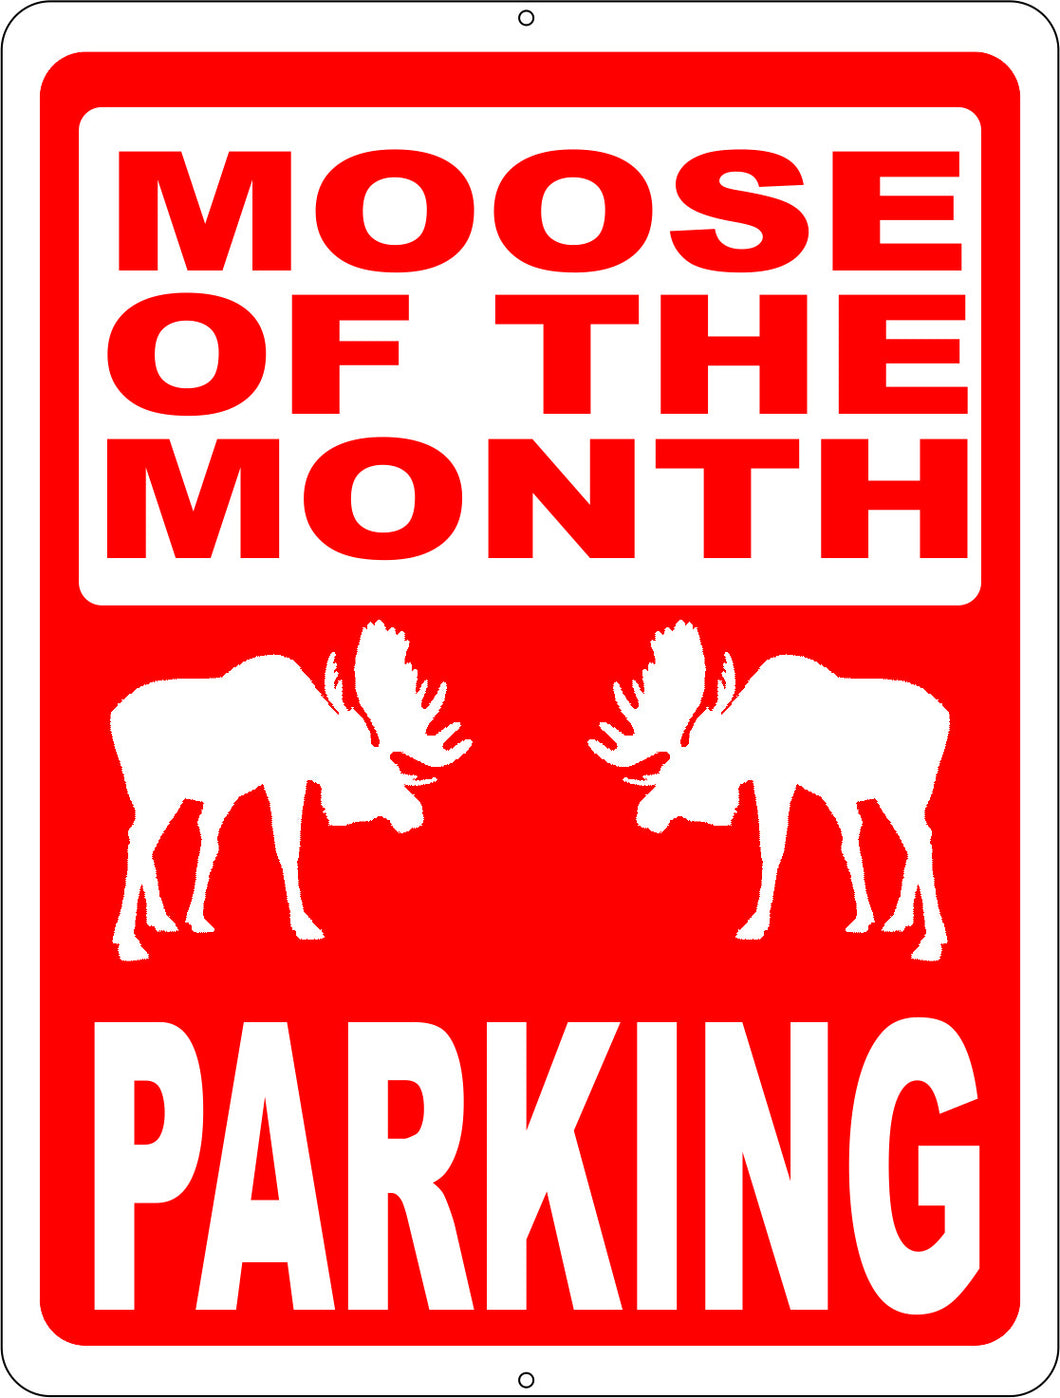 Moose of the Month Parking Sign - Signs & Decals by SalaGraphics